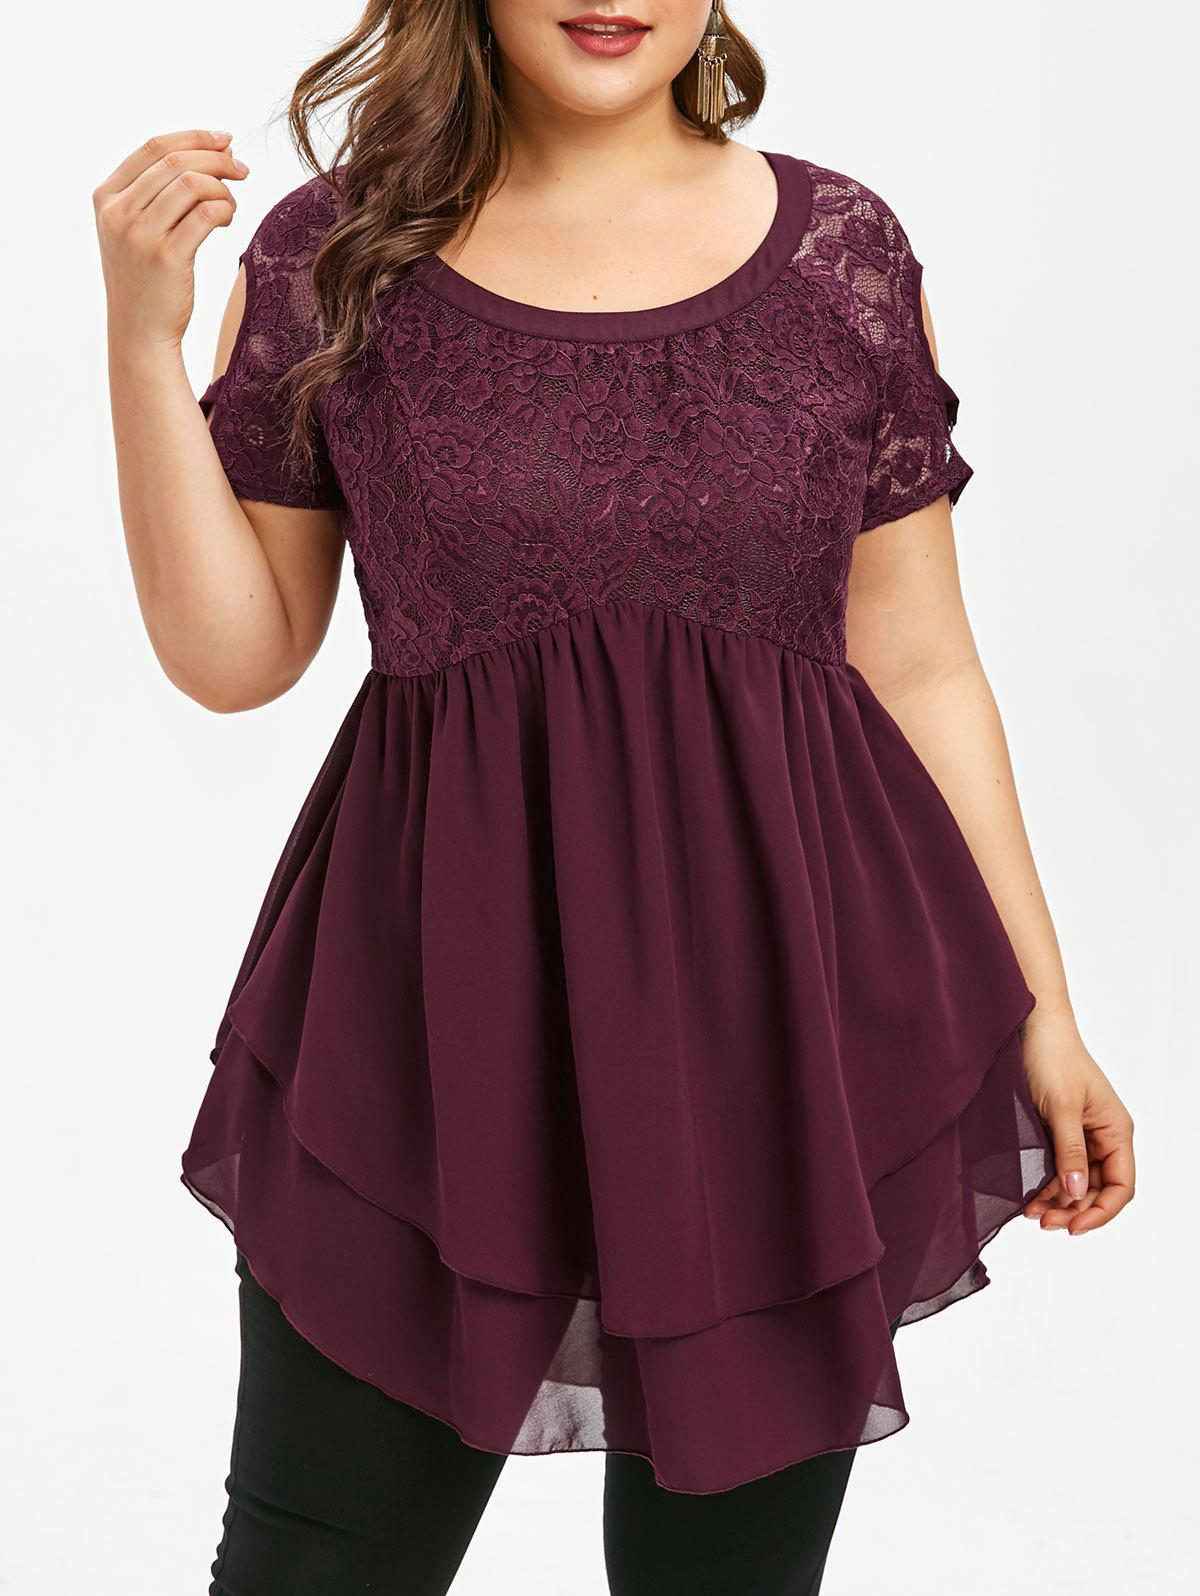 Shop Lace Insert Plus Size Short Sleeve Blouse